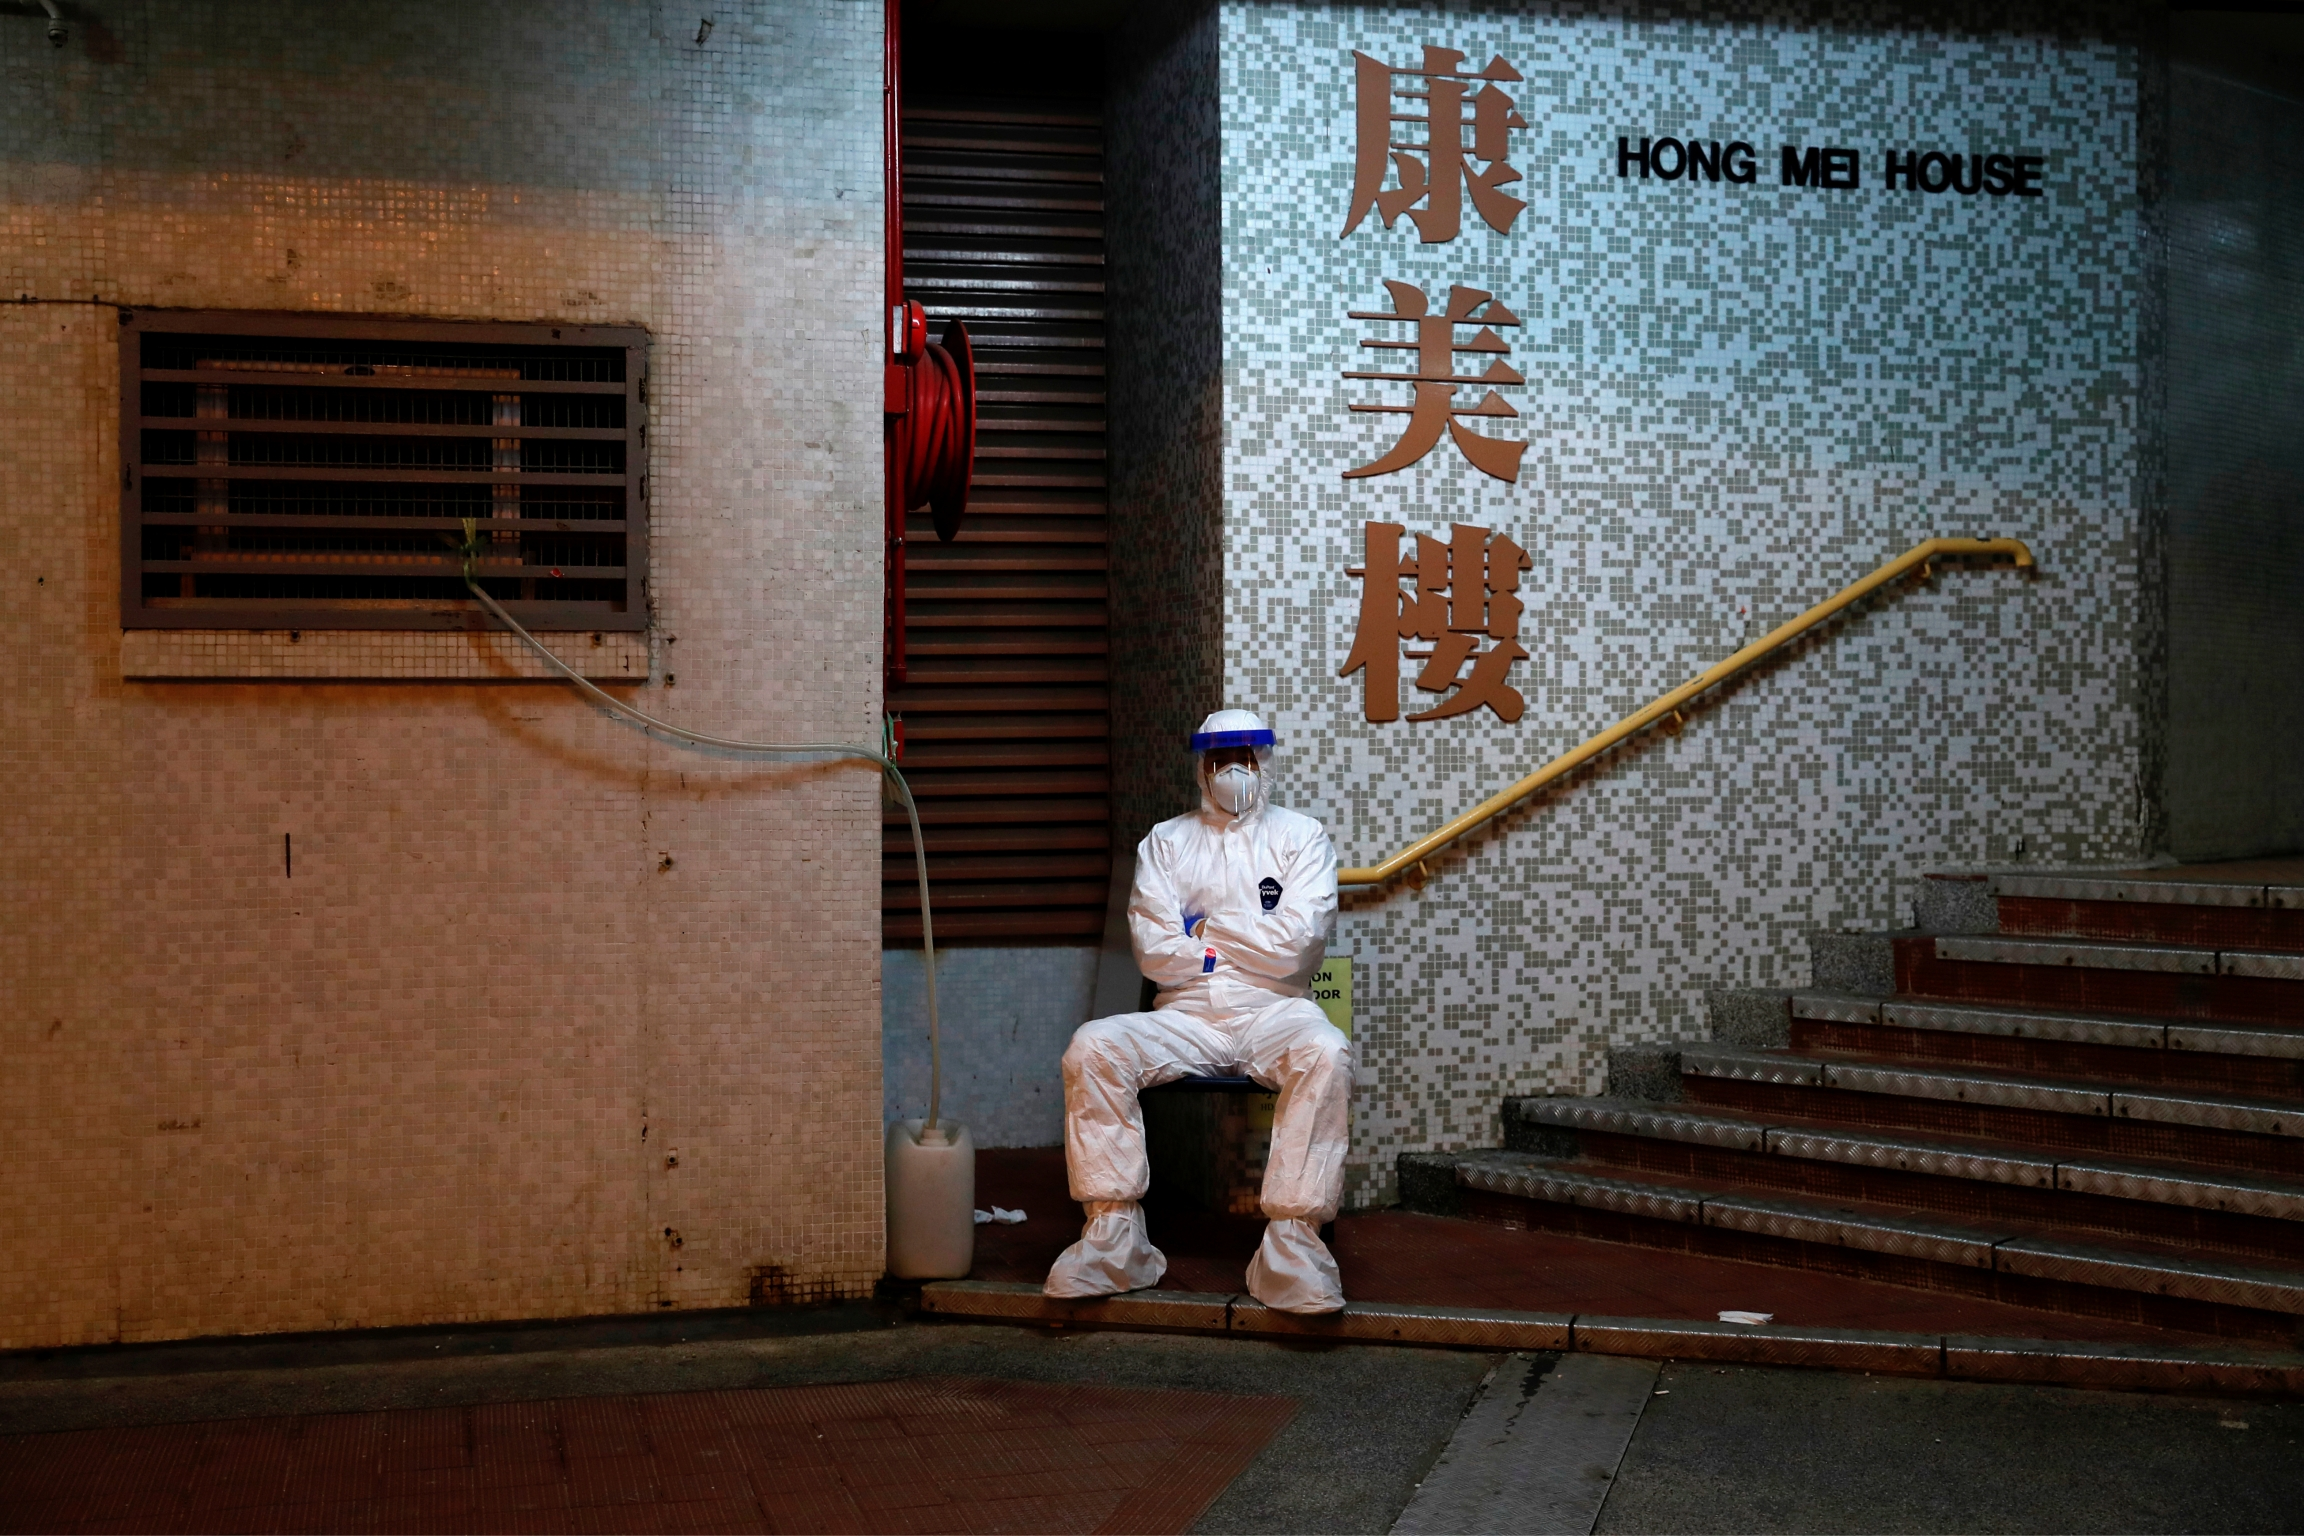 A man in protective gear sits outside a building